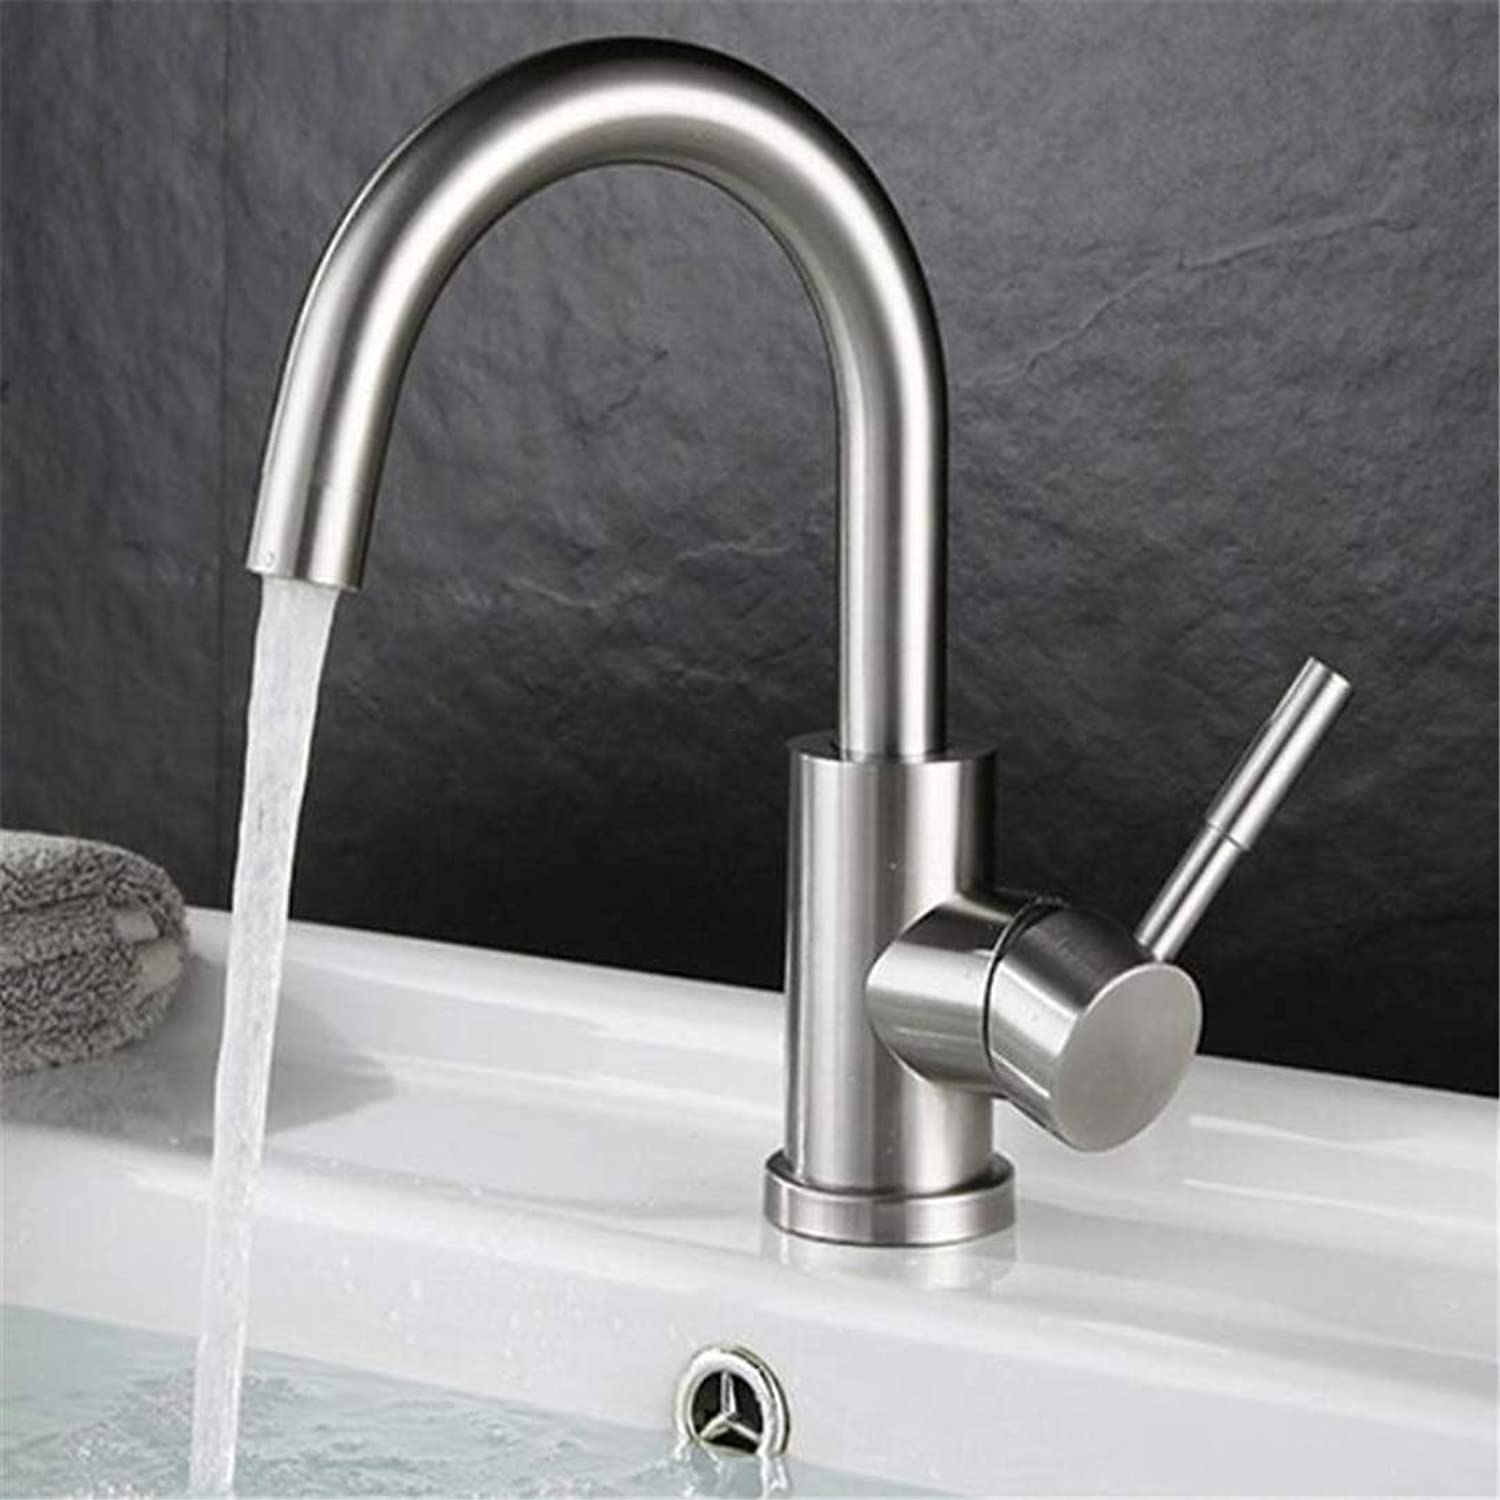 Faucet Washbasin Mixer Single Handle redatable Bathroom Faucet High Quality Stainless Steel Basin Faucet Water Mixer